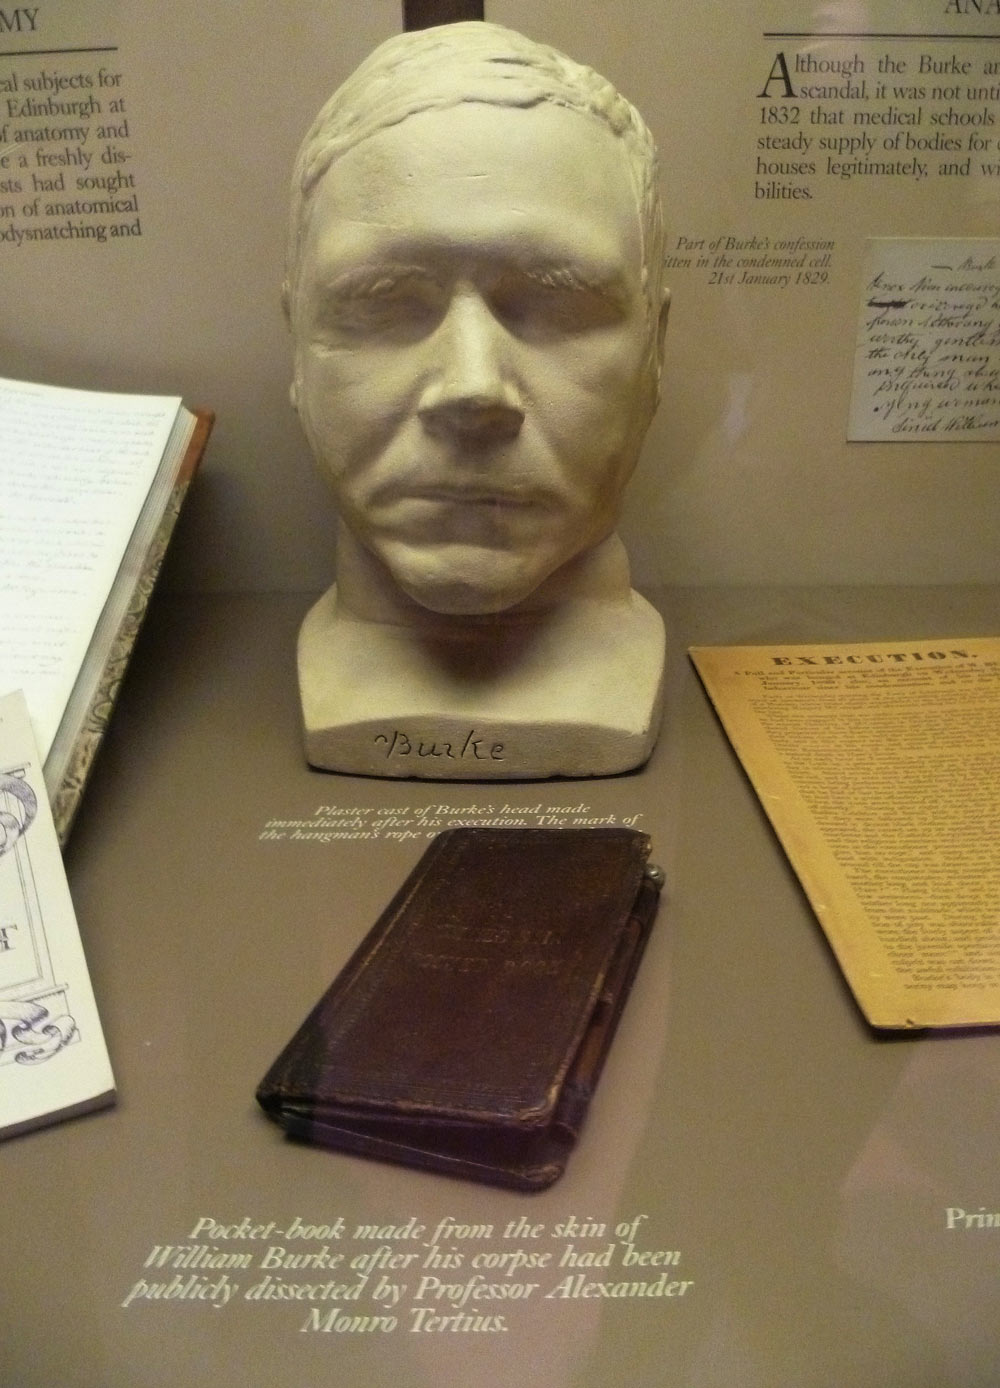 William Burke's death mask and pocket book, Surgeons' Hall Museum, Edinburgh